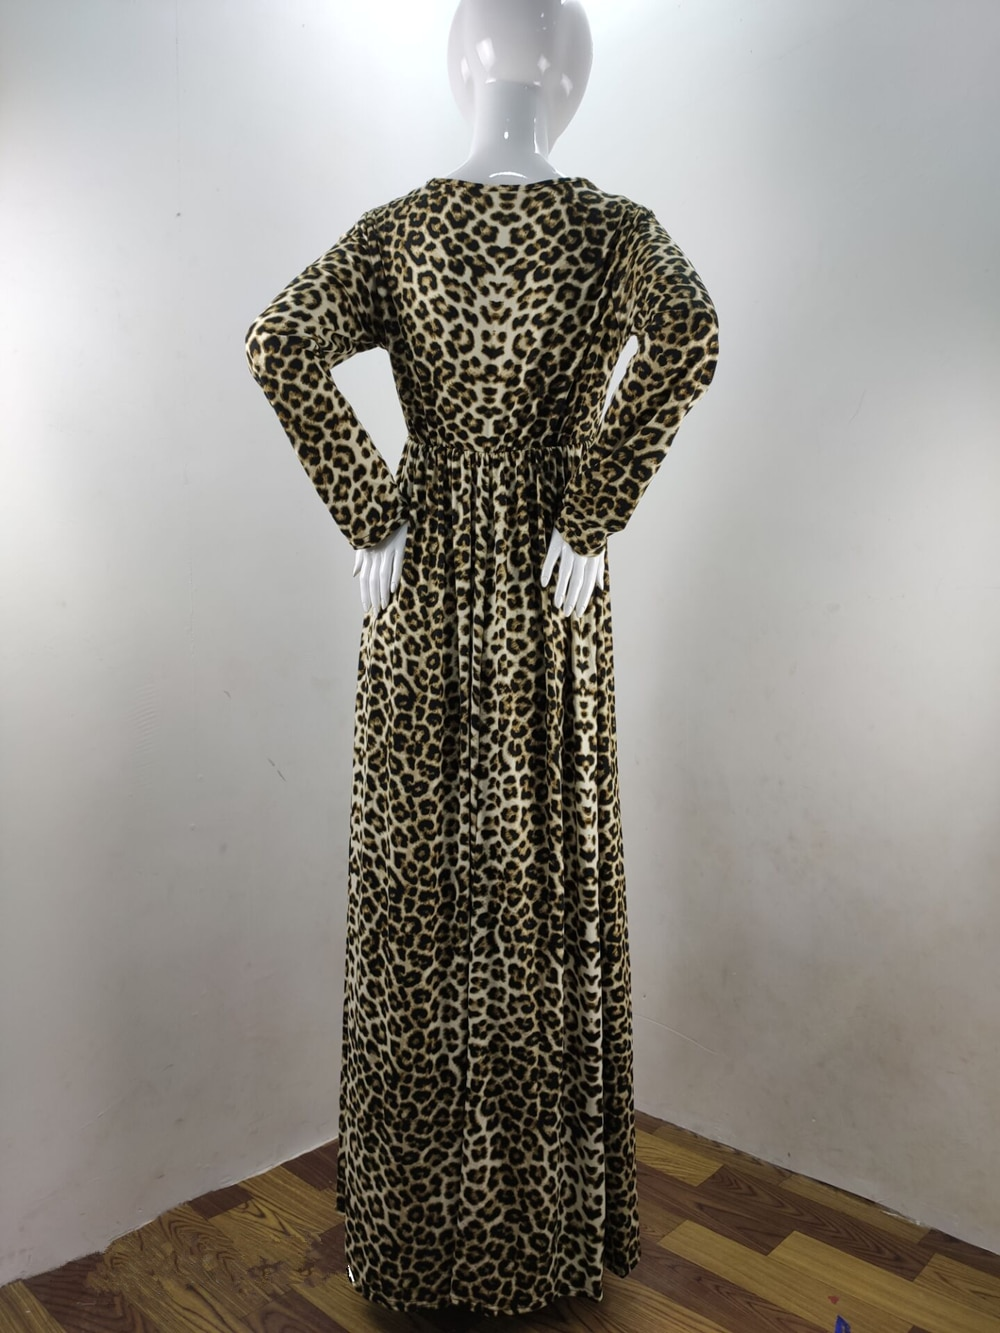 Fashion Maternity Dresses Photography Props Leopard Pregnancy Dress Long Sleeve Maternity Clothes For Pregnant Women Photo Shoot (10)